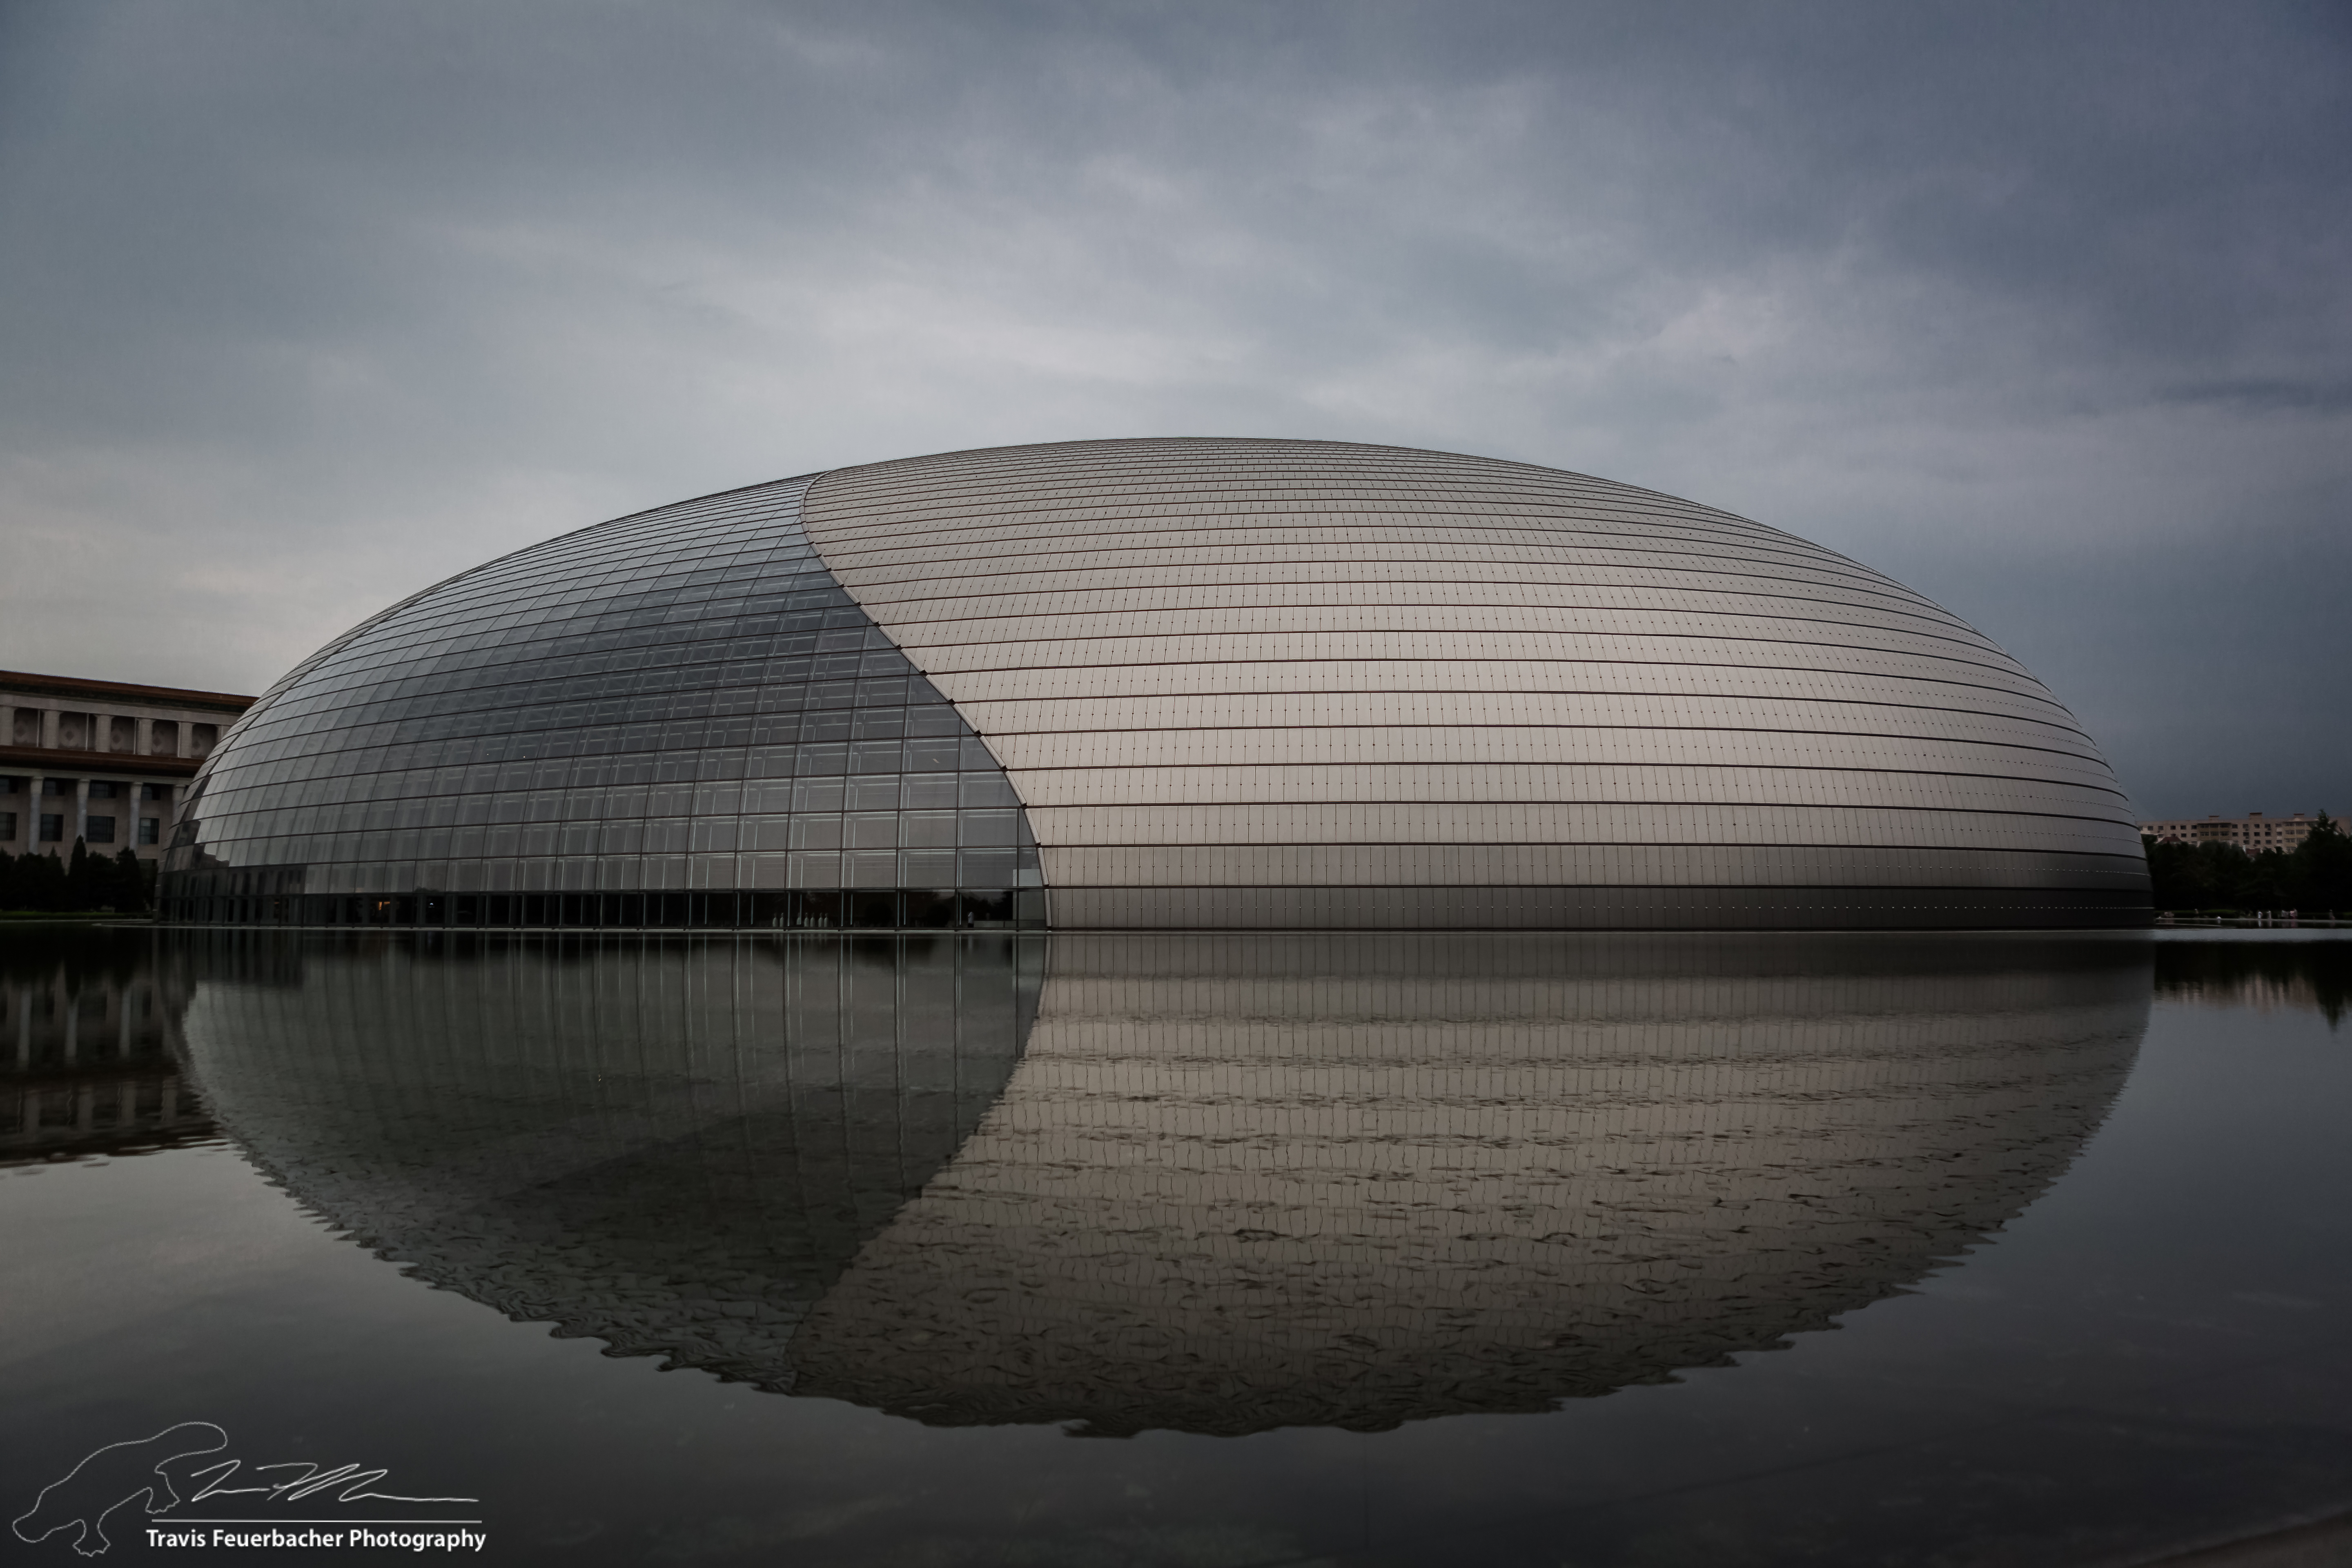 National centre for performing arts beijing travis for National centre for the performing arts architecture